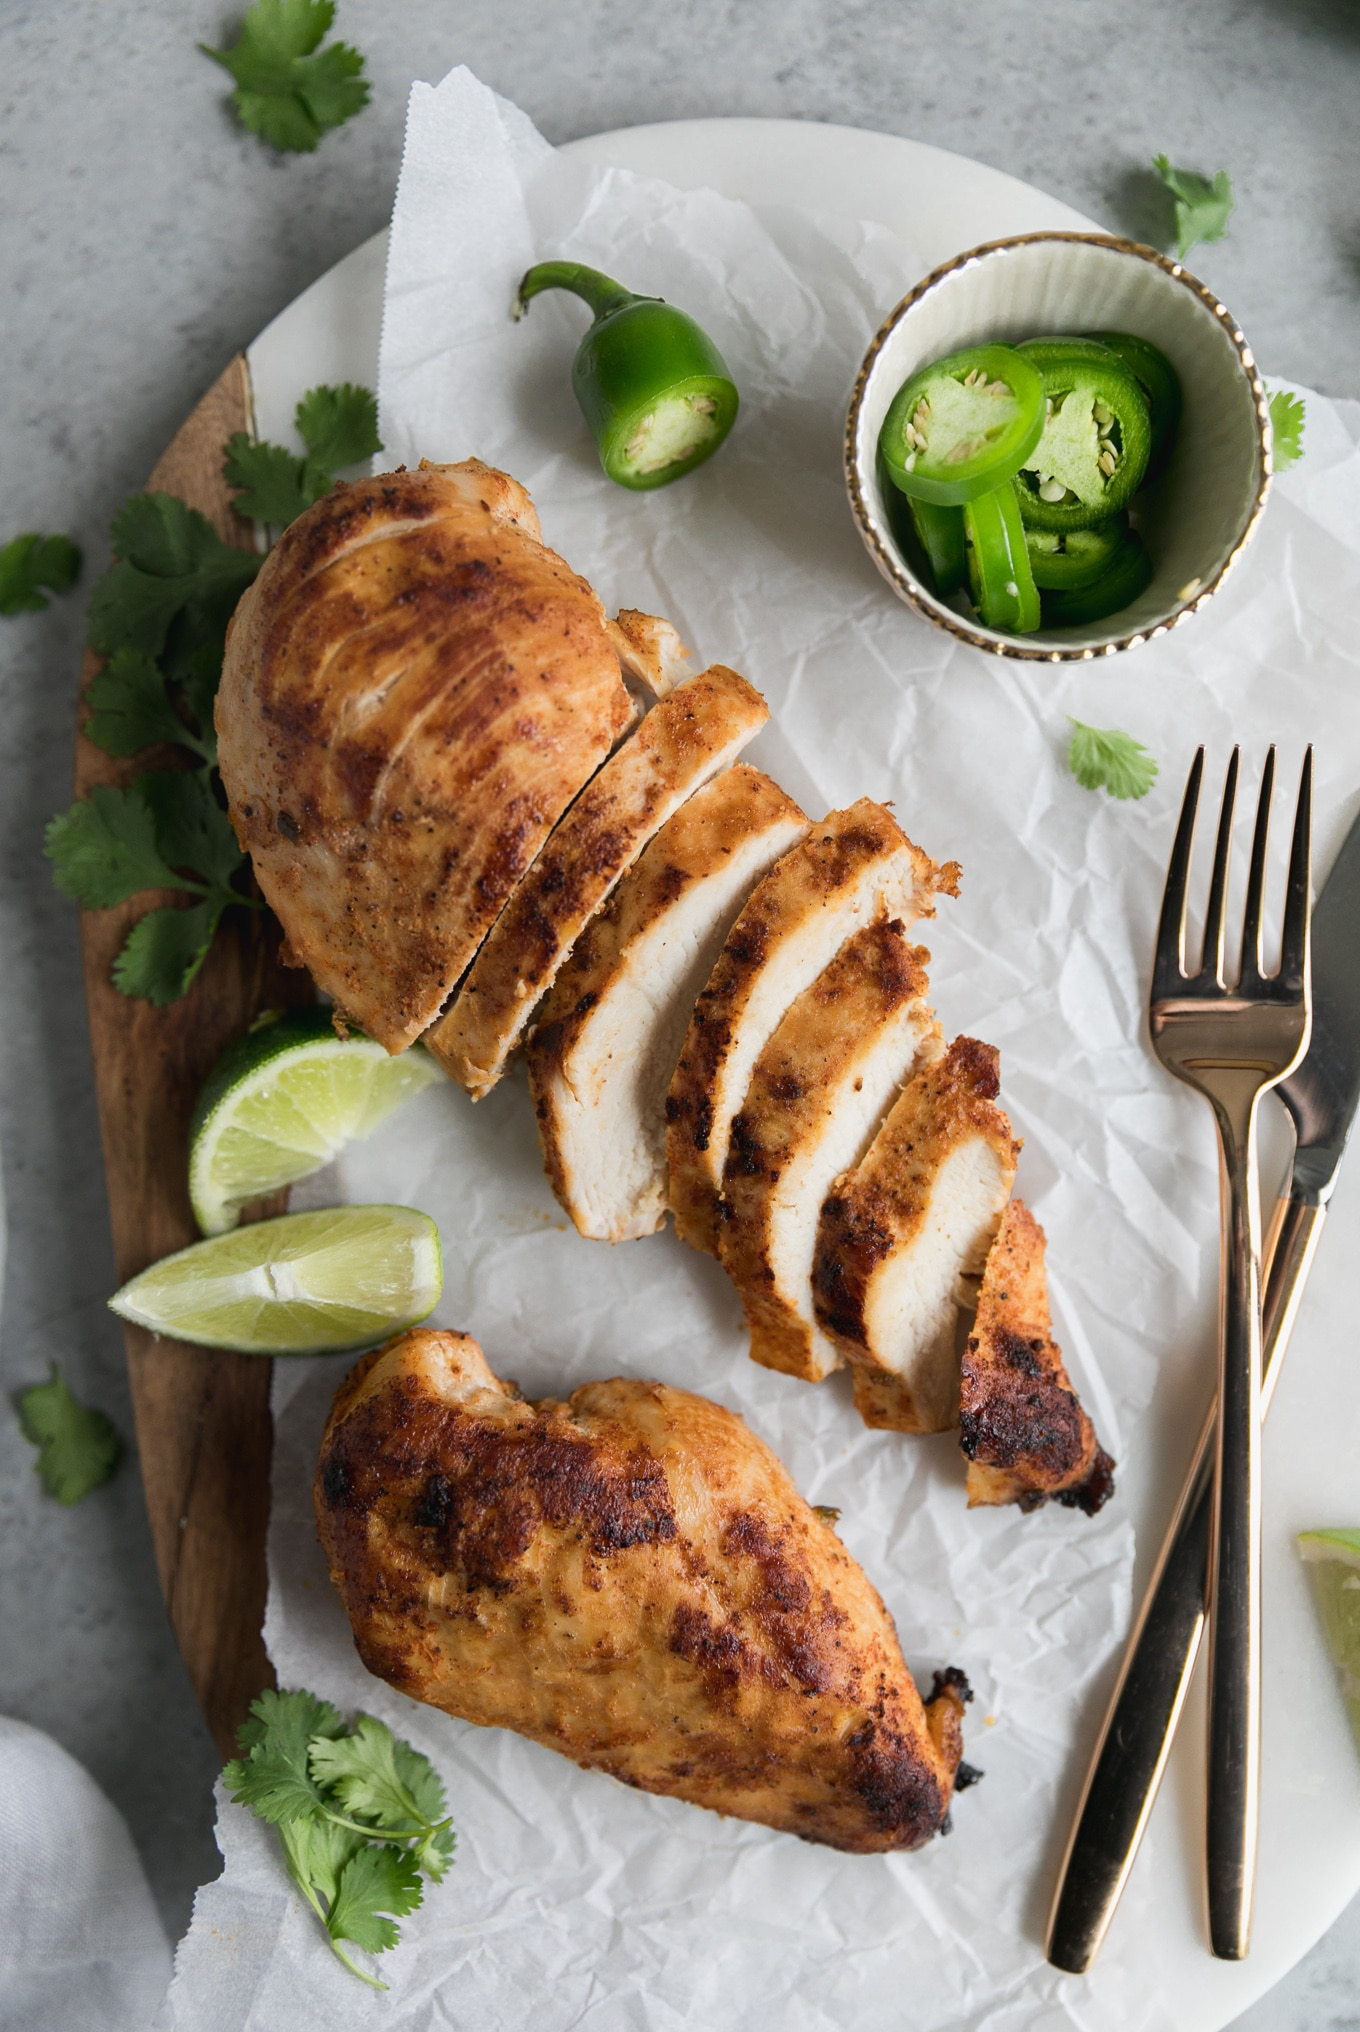 Overhead shot of two chicken breasts, one sliced and one whole, with lime wedges, a bowl of sliced jalapeños, and cilantro off to the side and a golf fork and knife to the right